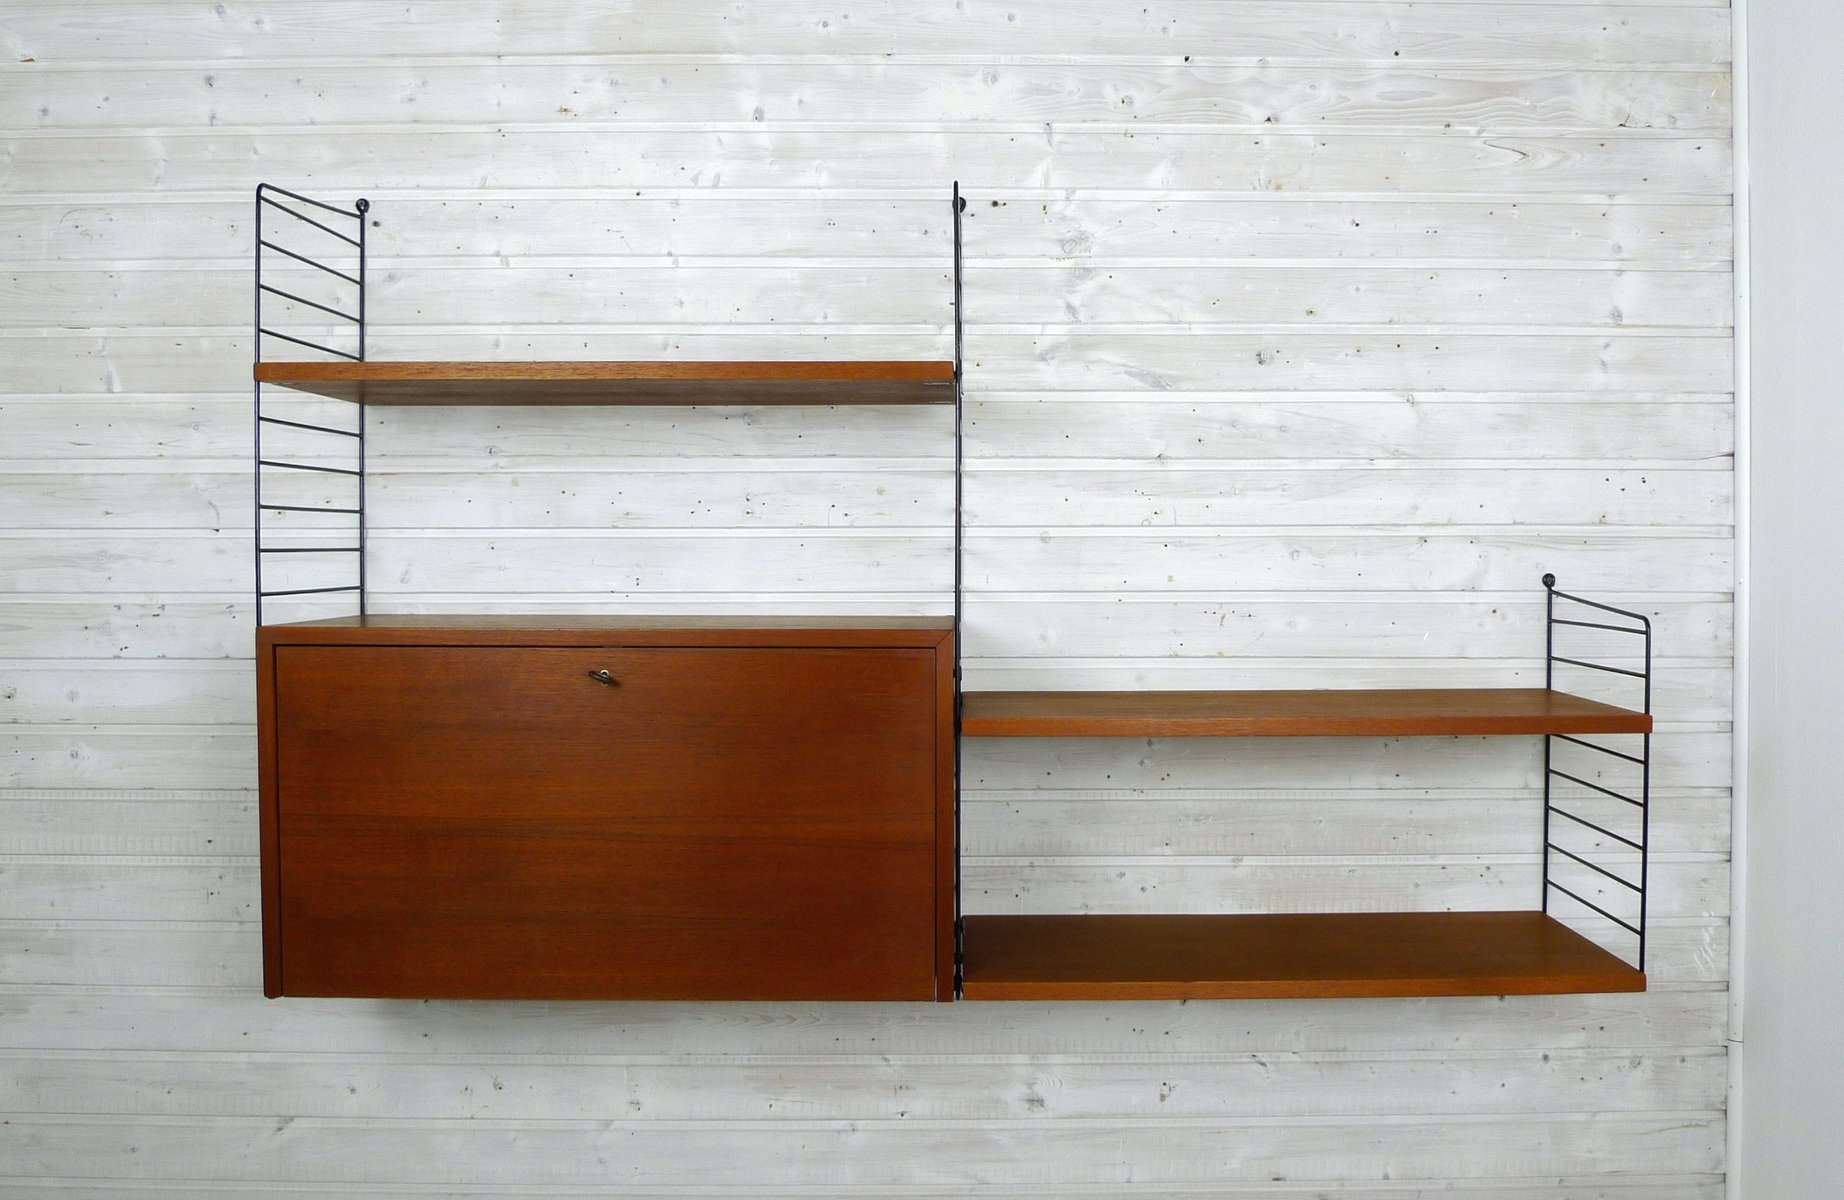 Teak Wall Unit with Cabinet by Nisse Strinning for String, 1950s ...